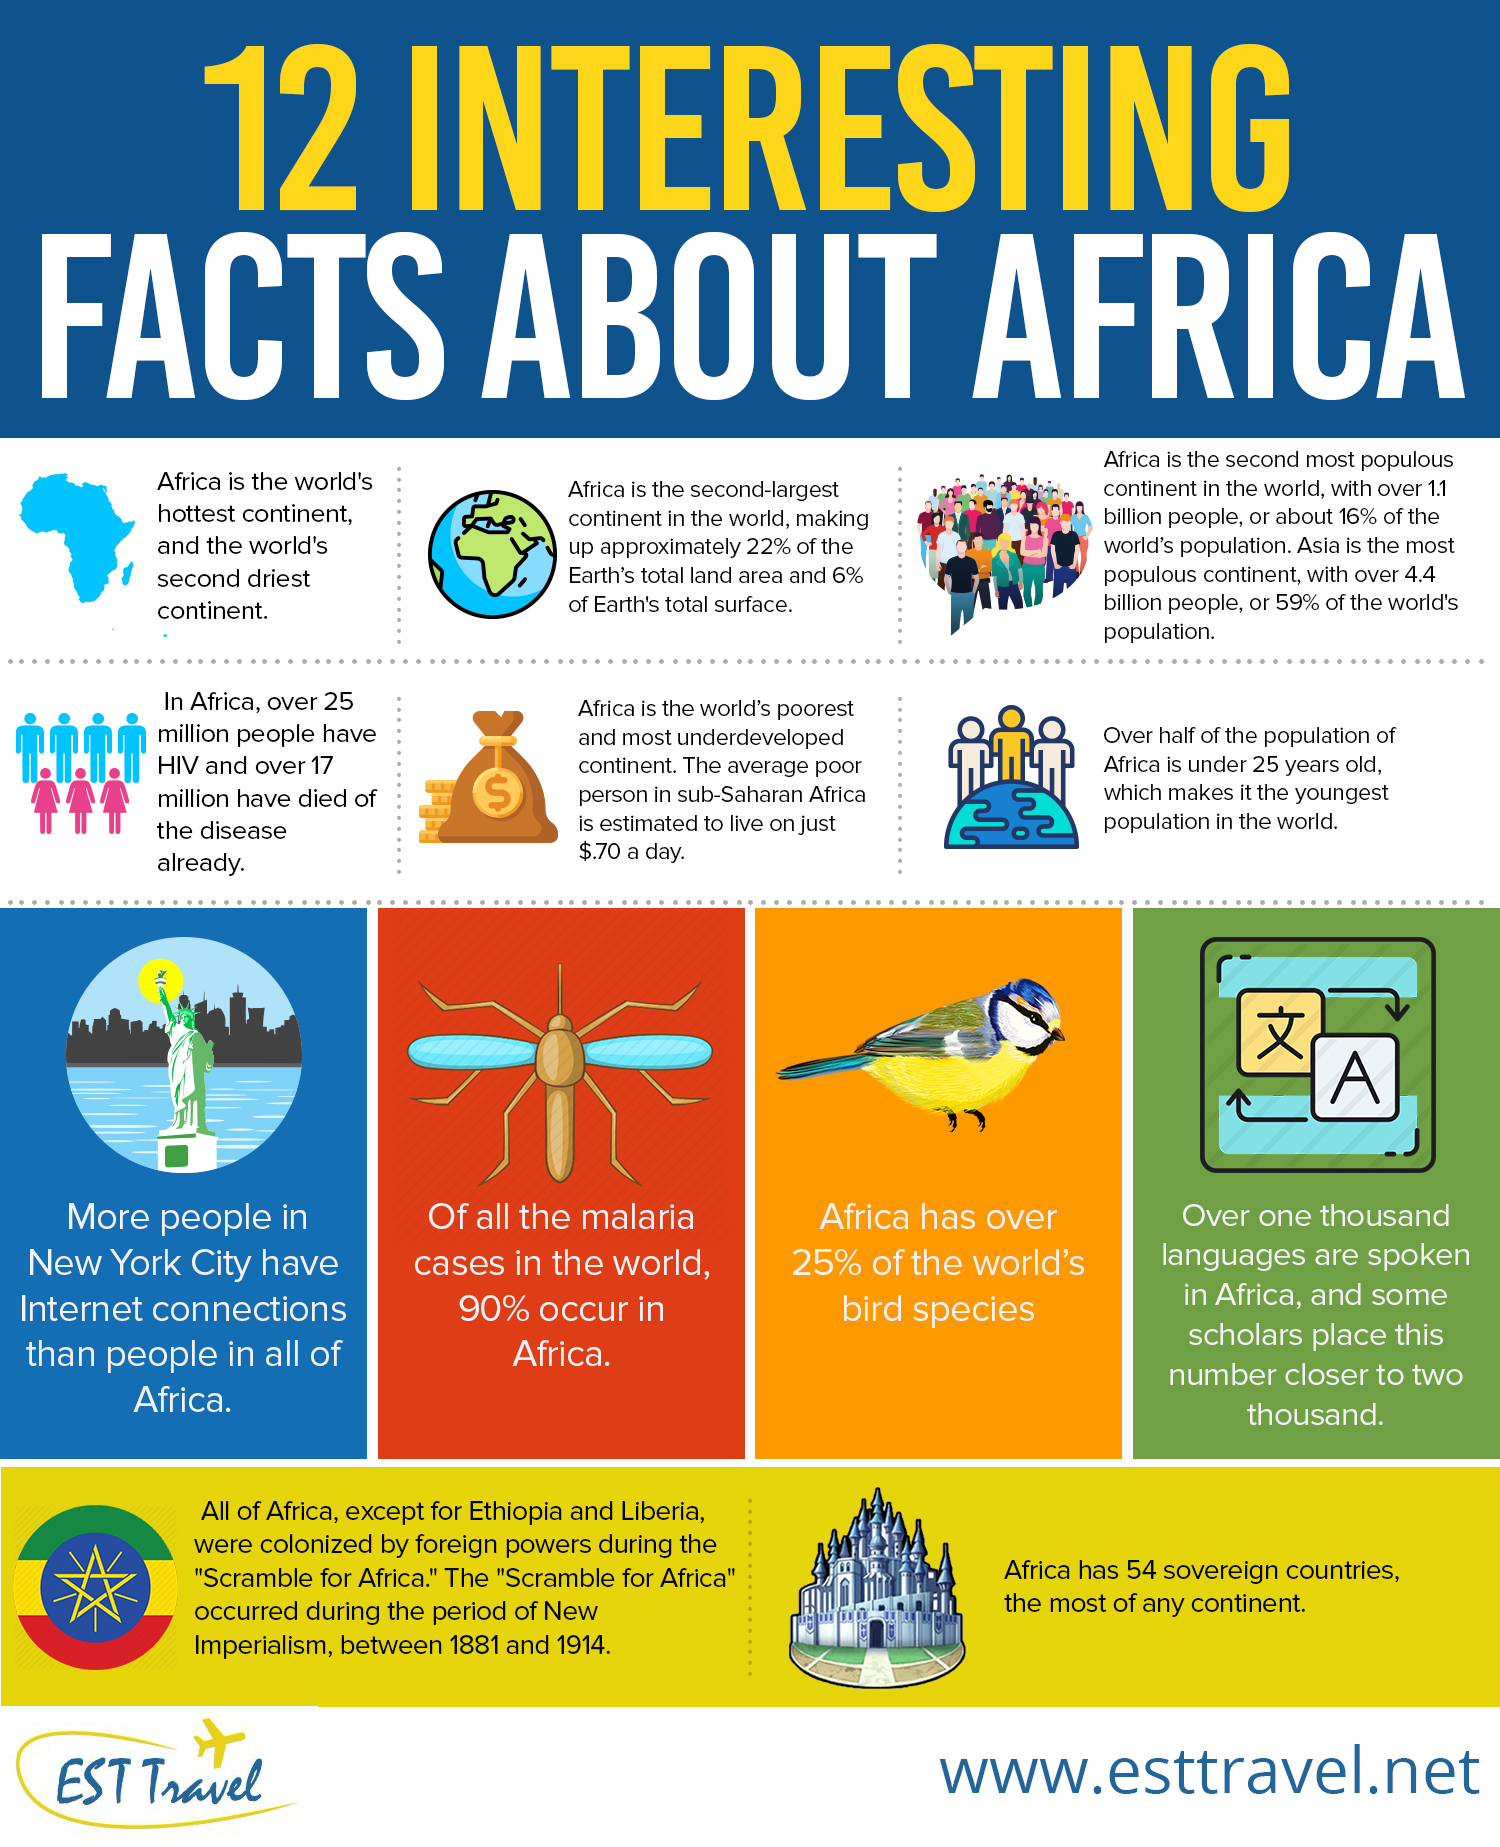 12 Interesting Facts About Africa